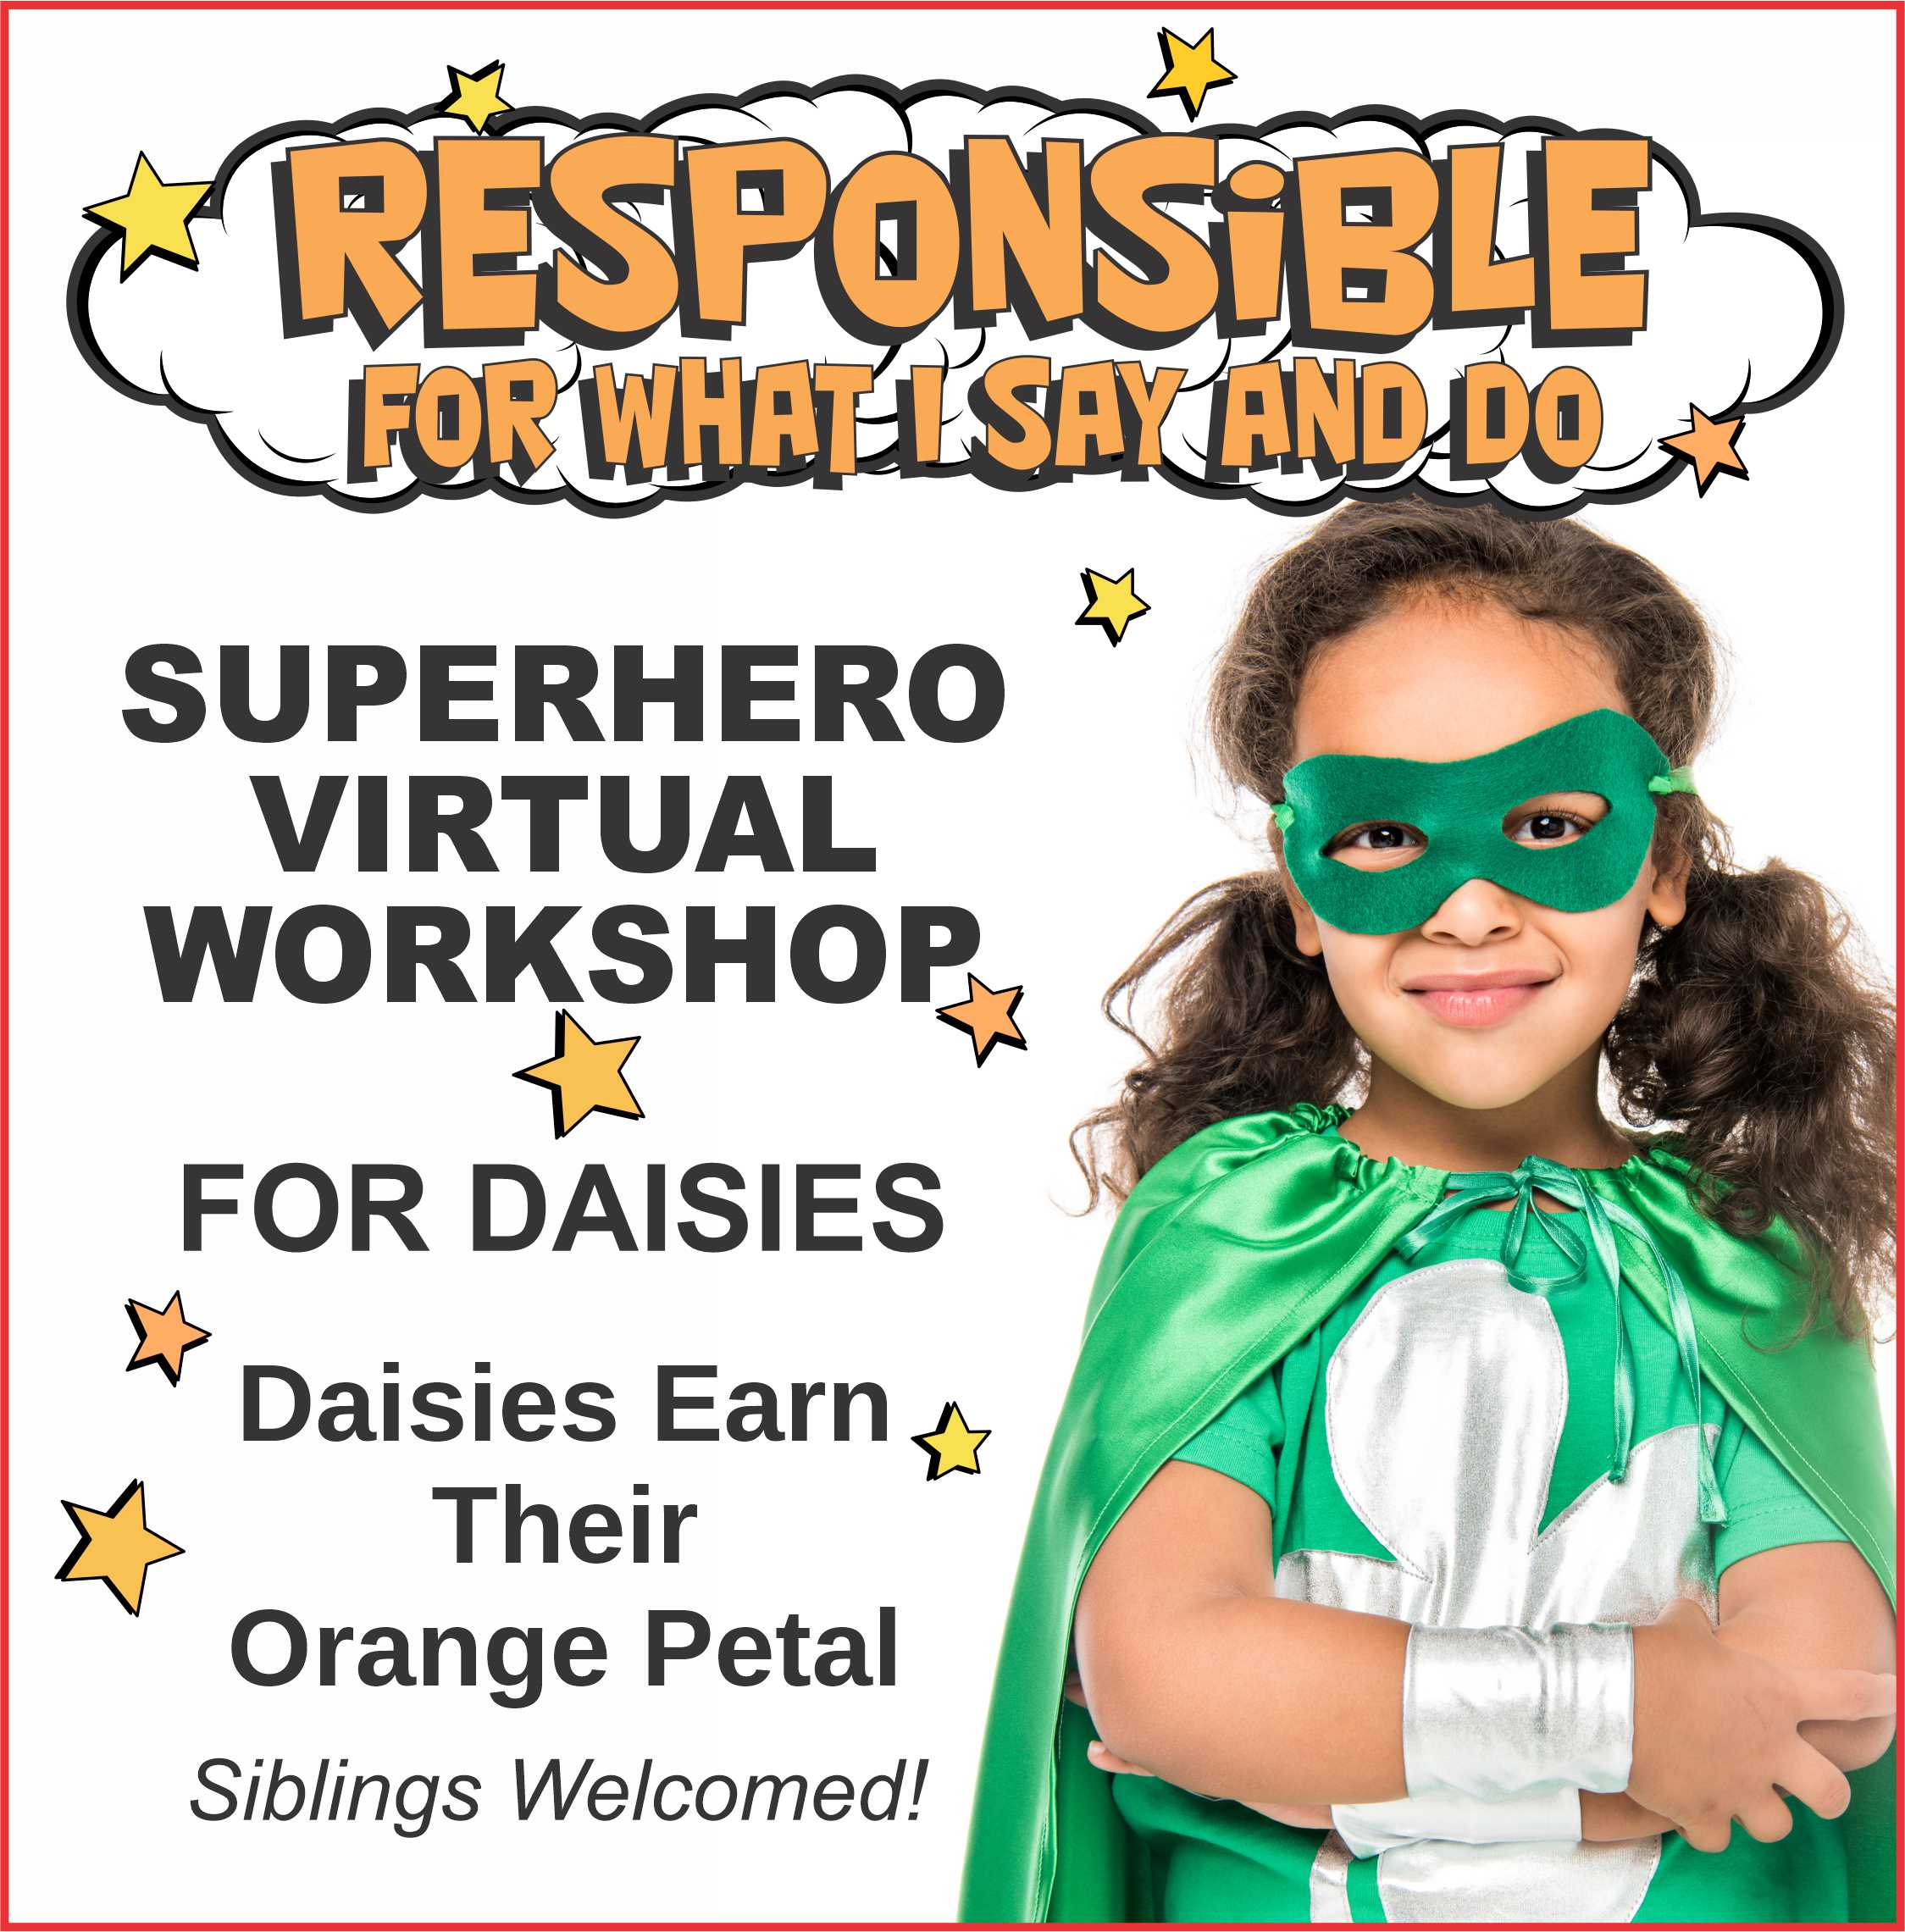 Girl Scout Superhero Responsible for What I Say and Do Virtual Workshop